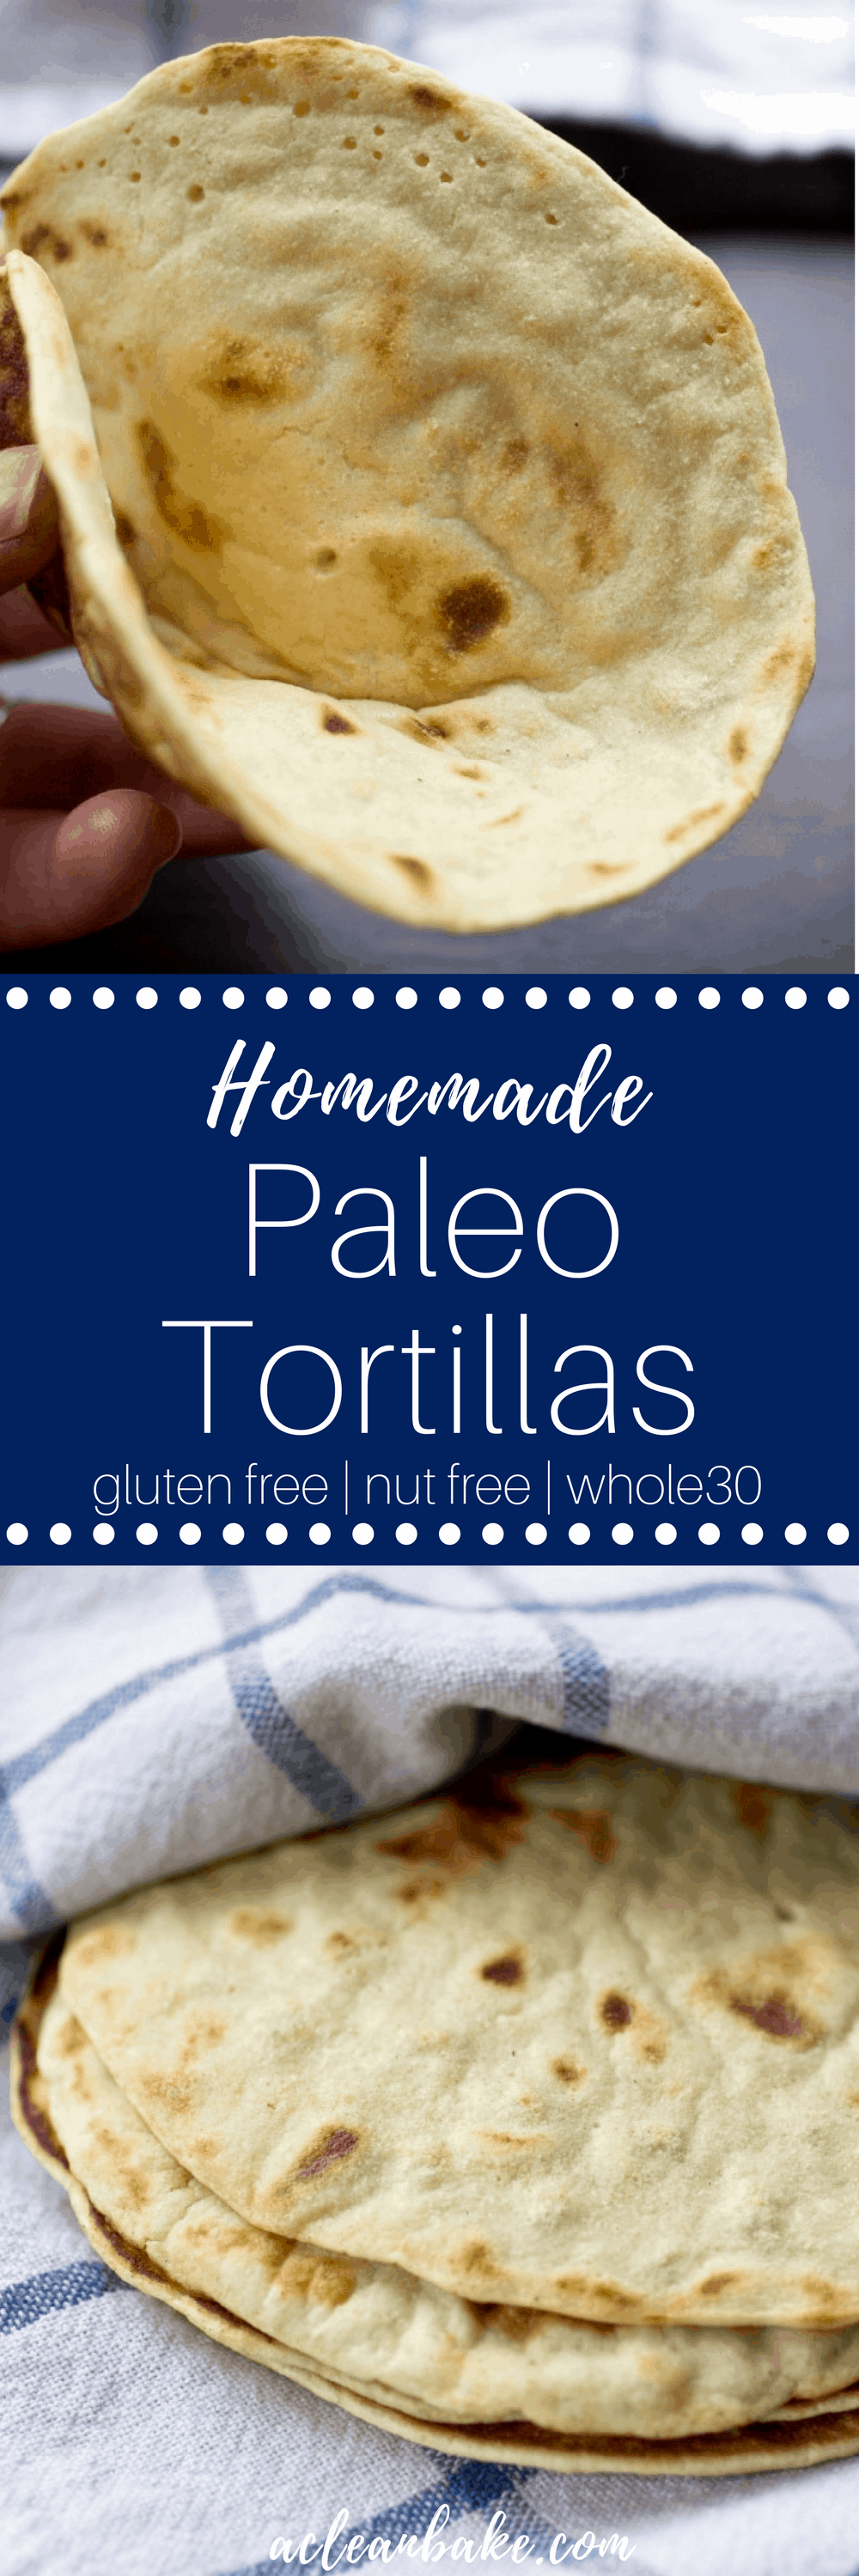 Easy Paleo and Nut Free tortillas #glutenfree #paleo #nutfree #healthytortillas #healthyrecipe #glutenfreewraps #paleowraps #nutfreewraps